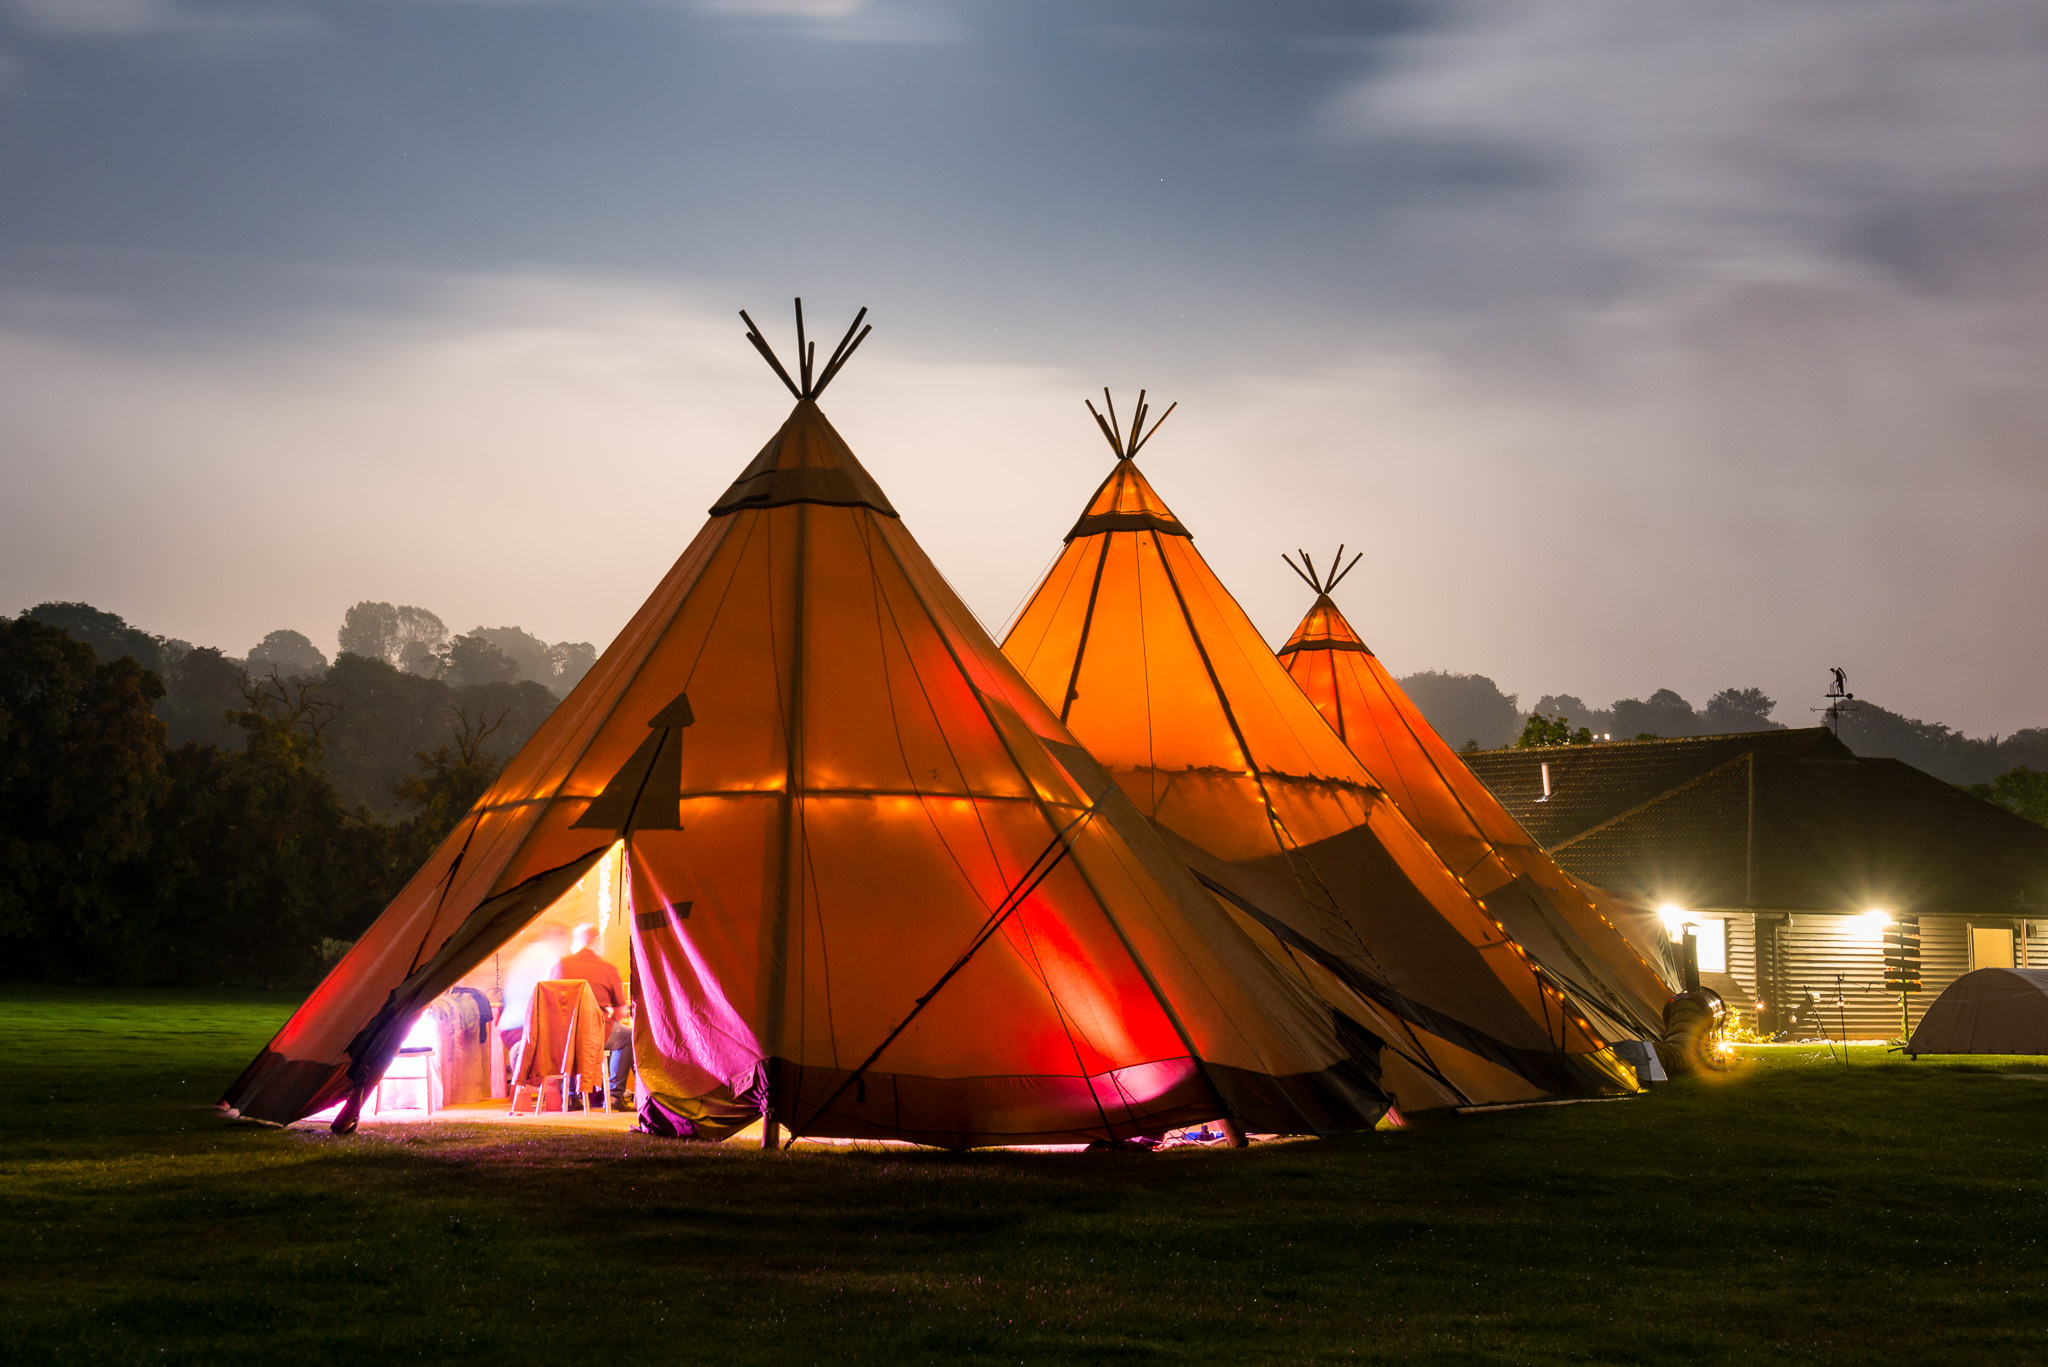 The tipis at night-time